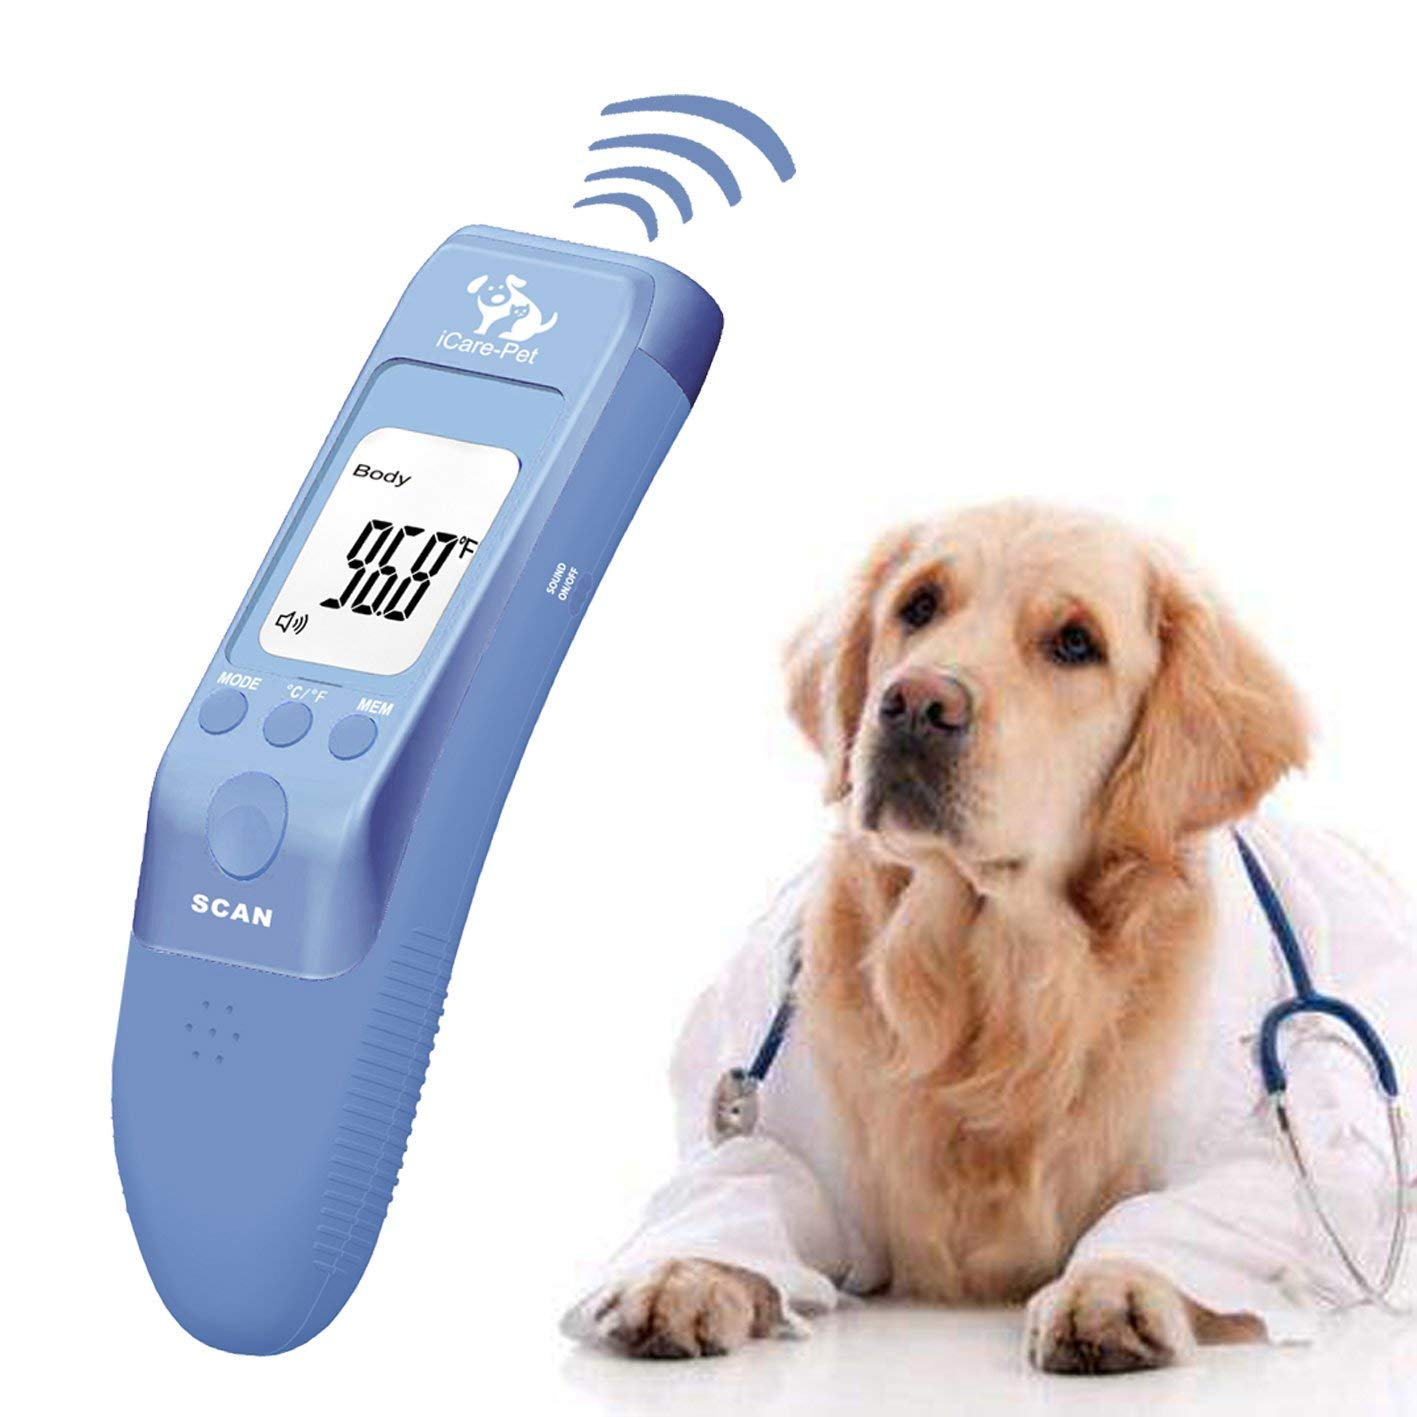 Pet Clinic Thermometer for Dog, Cat, Rabbit and All Pets, Measure in 1s, C/F Switchable by iCare-Pet